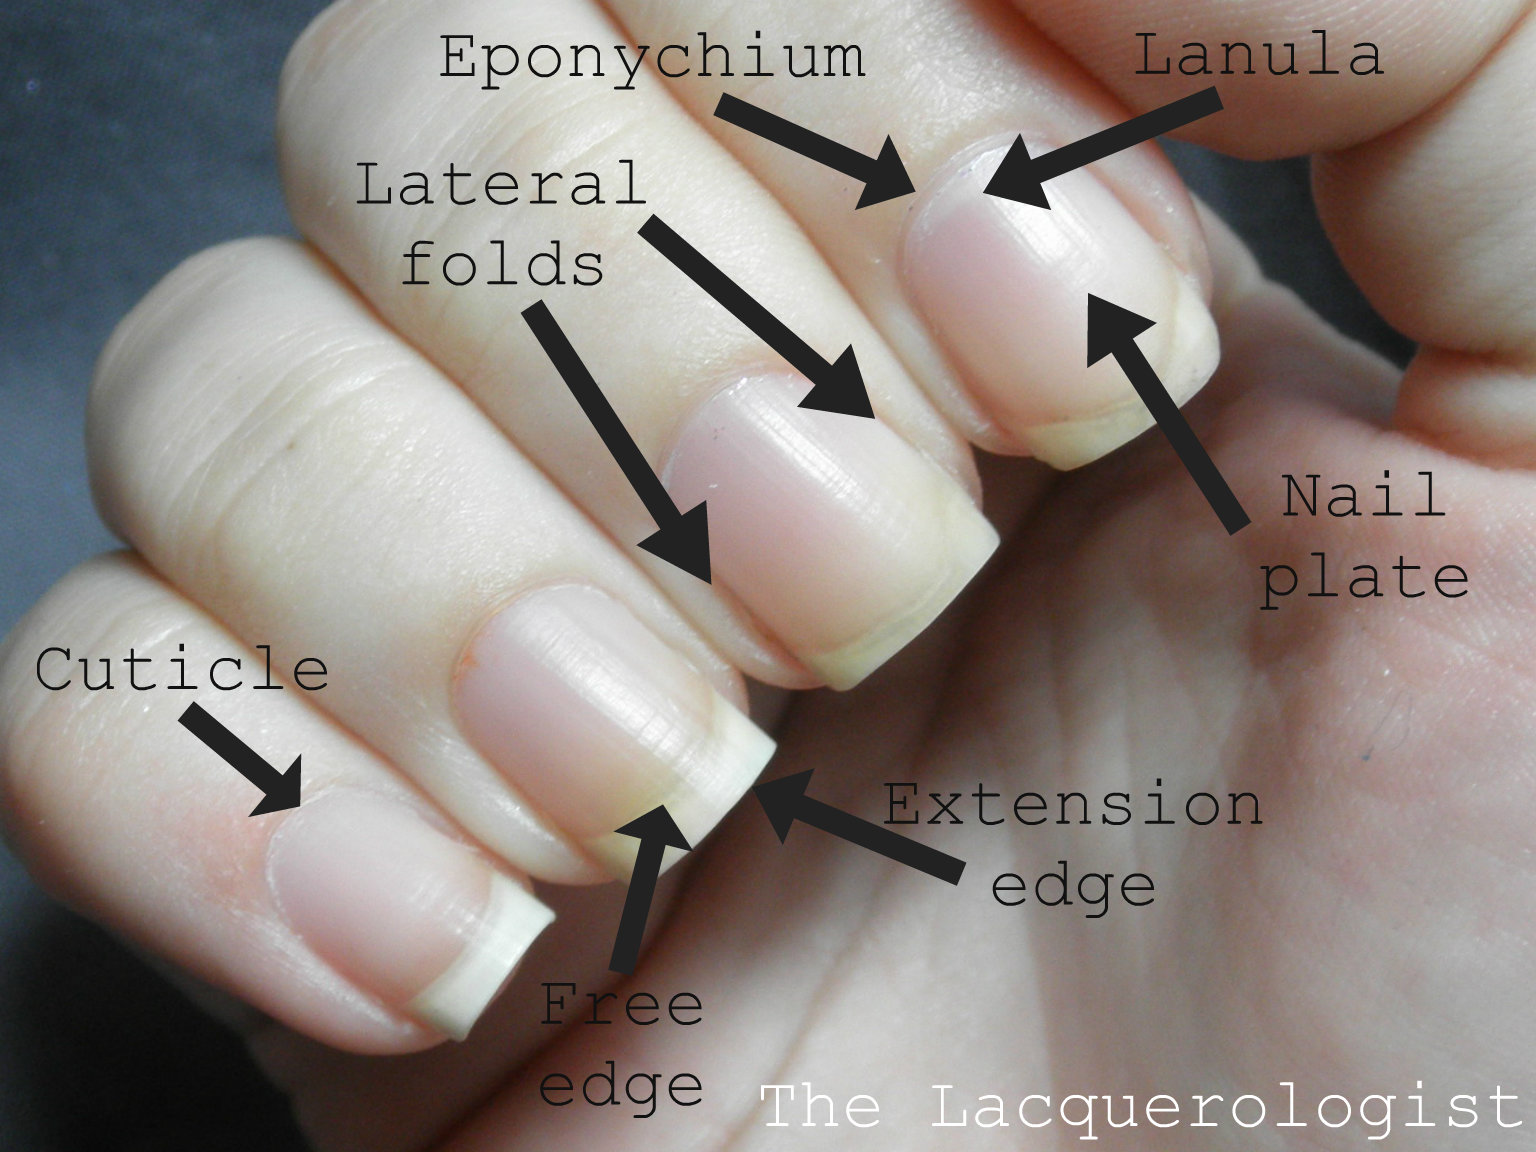 The Lacquerologist Tells All Eponychium And Nail Plate Health And